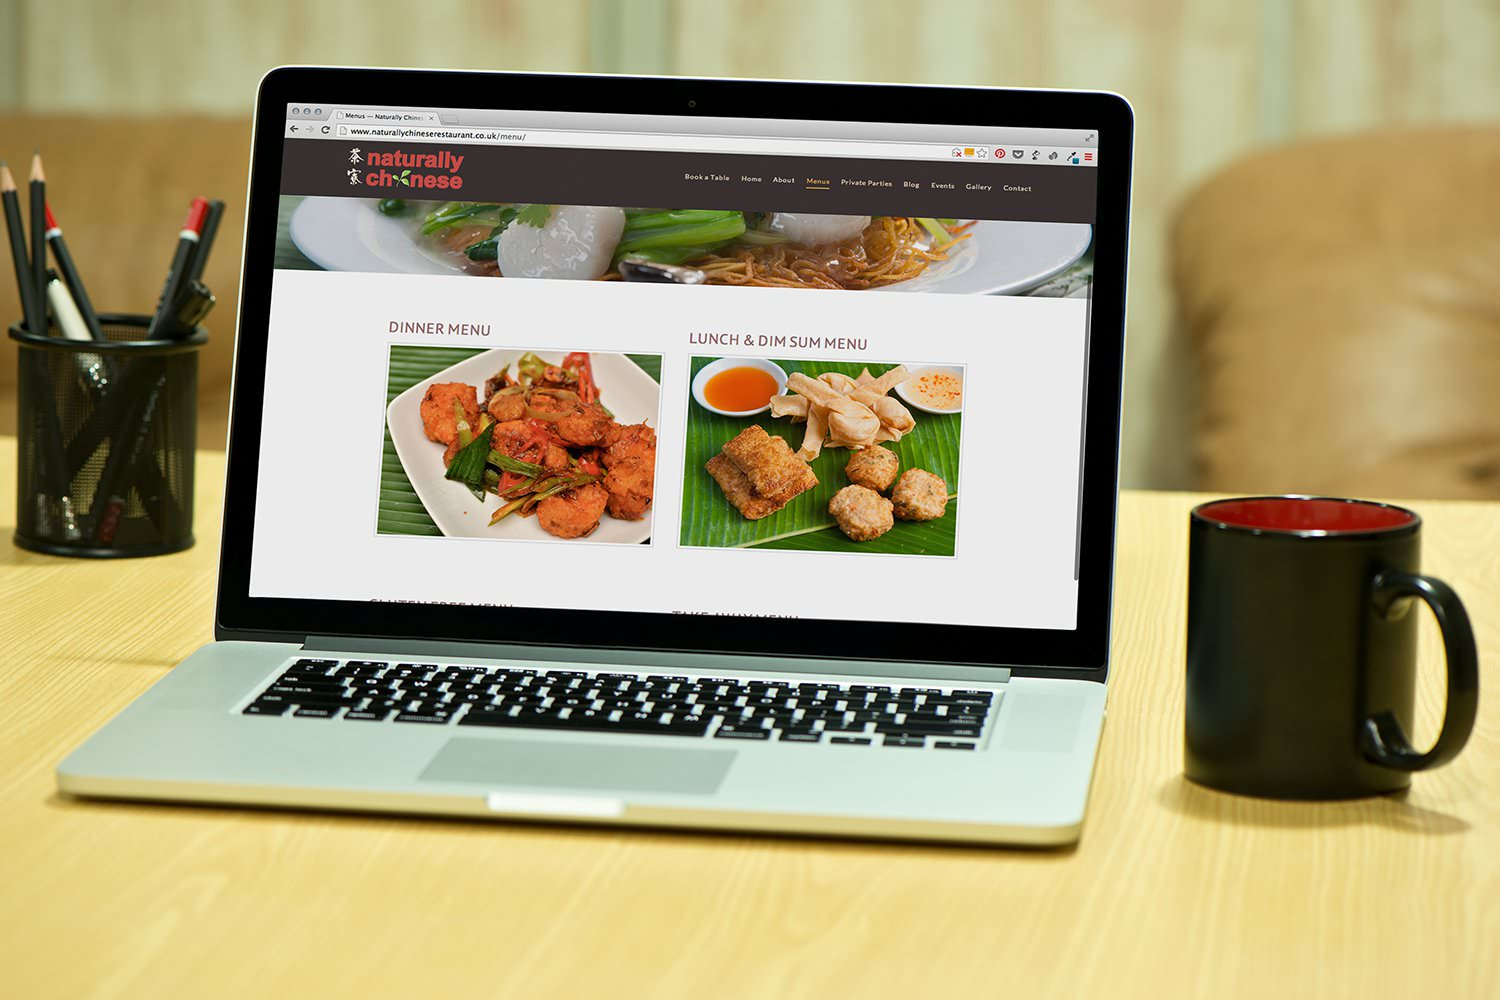 The menus page of the Naturally Chinese website displayed on a laptop –Tribus Creative – website and marketing strategies for small business